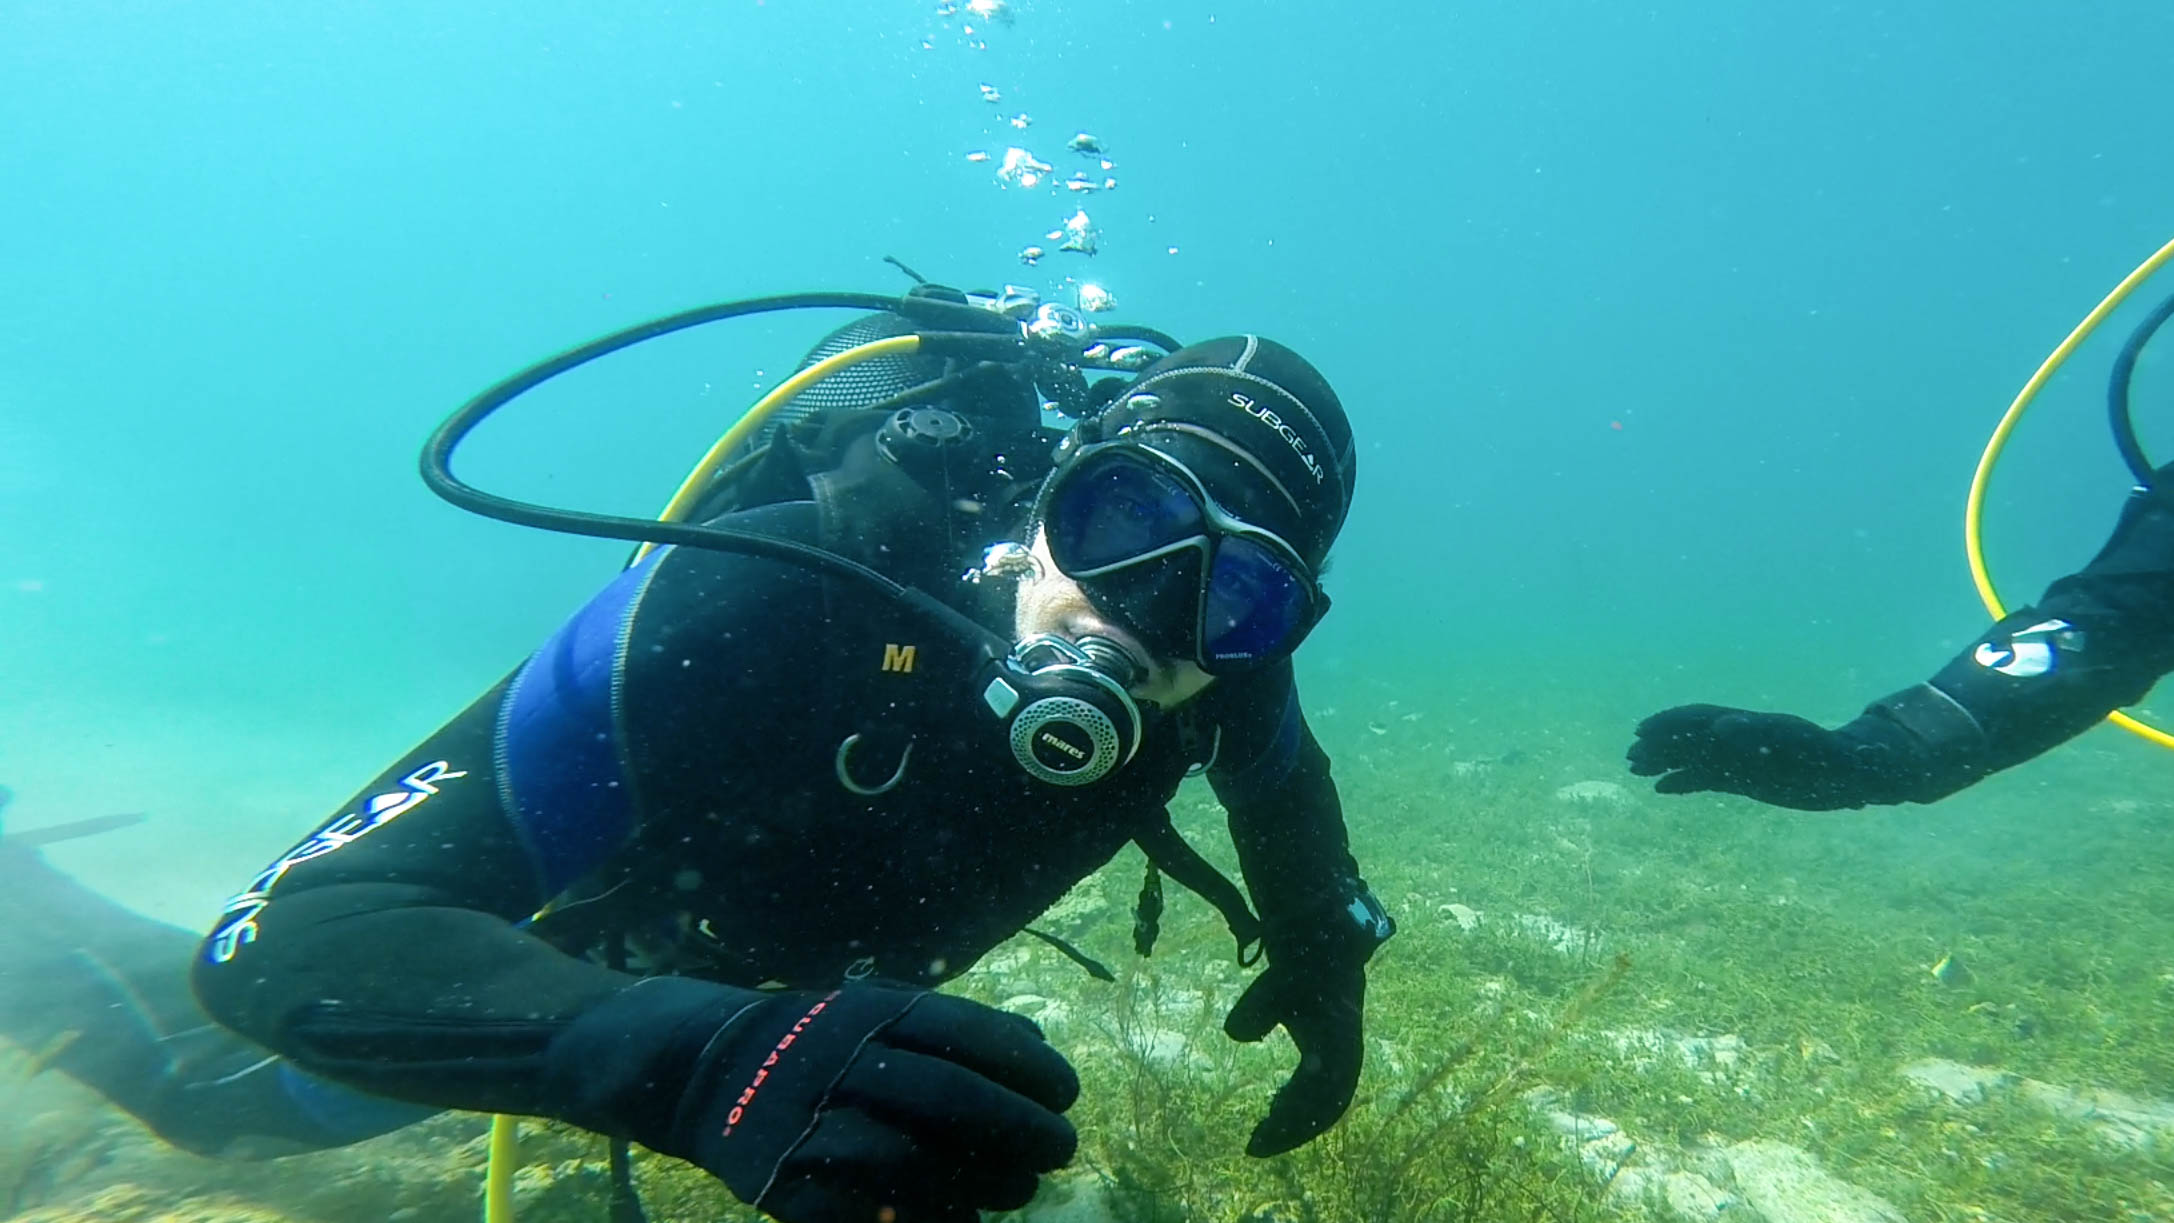 Joey Excited To Learn About History While Scuba Diving The Bay Of Bones